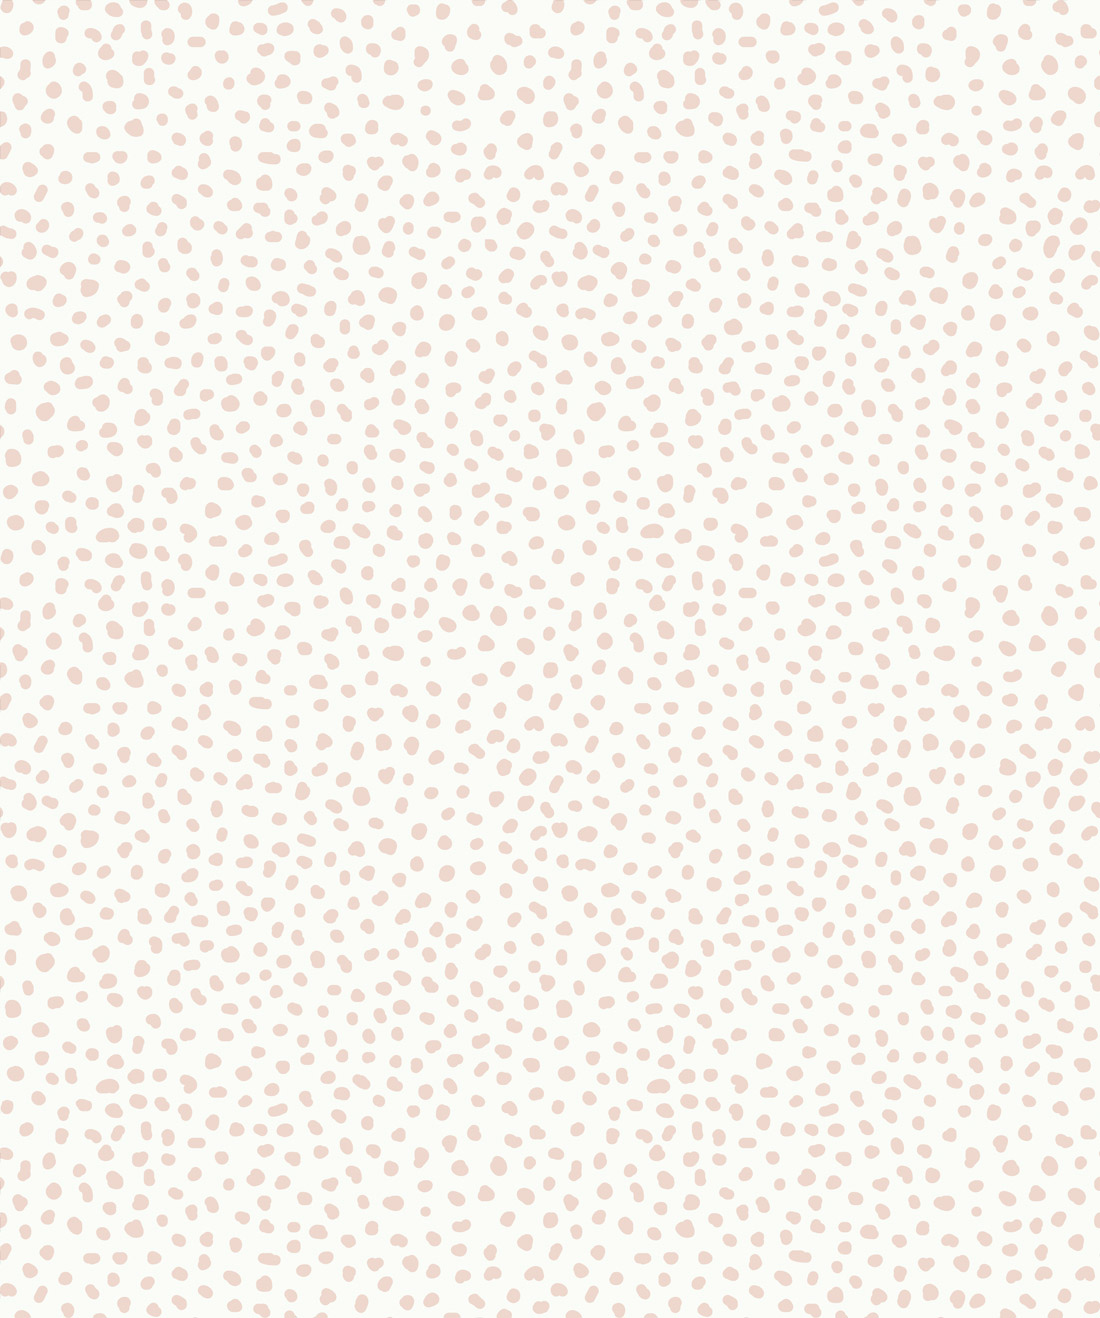 Huddy's Dots Wallpaper